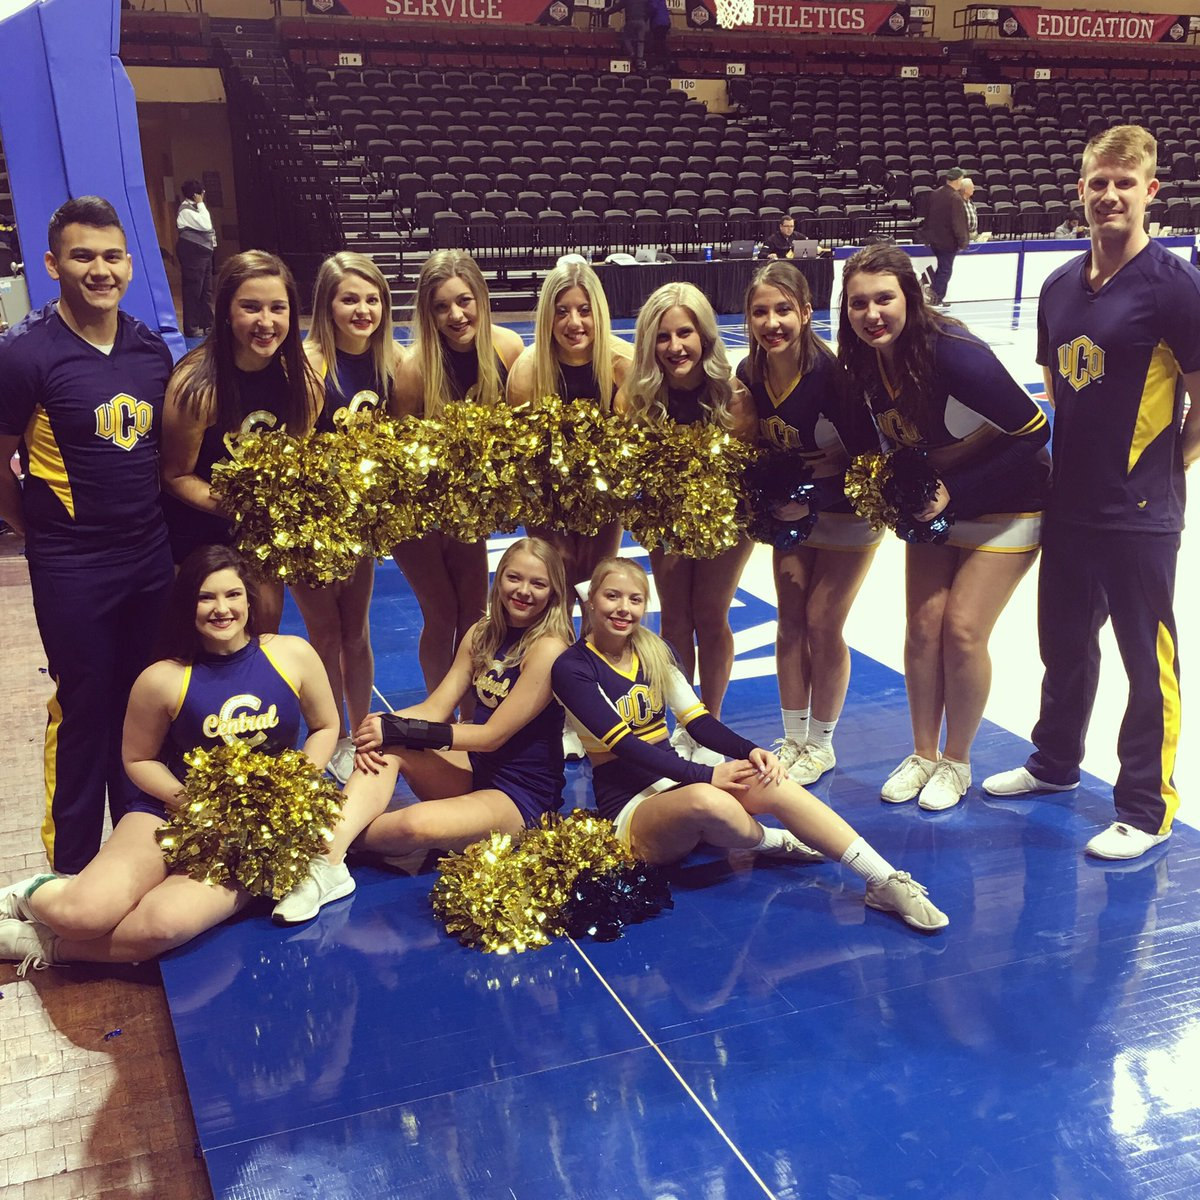 af2c3c01042 Cheering on the  UCOWBB at the MIAA basketball tournament! Let s go  Bronchos!  miaabasketball  ucopic.twitter.com lLFFKpp3sQ